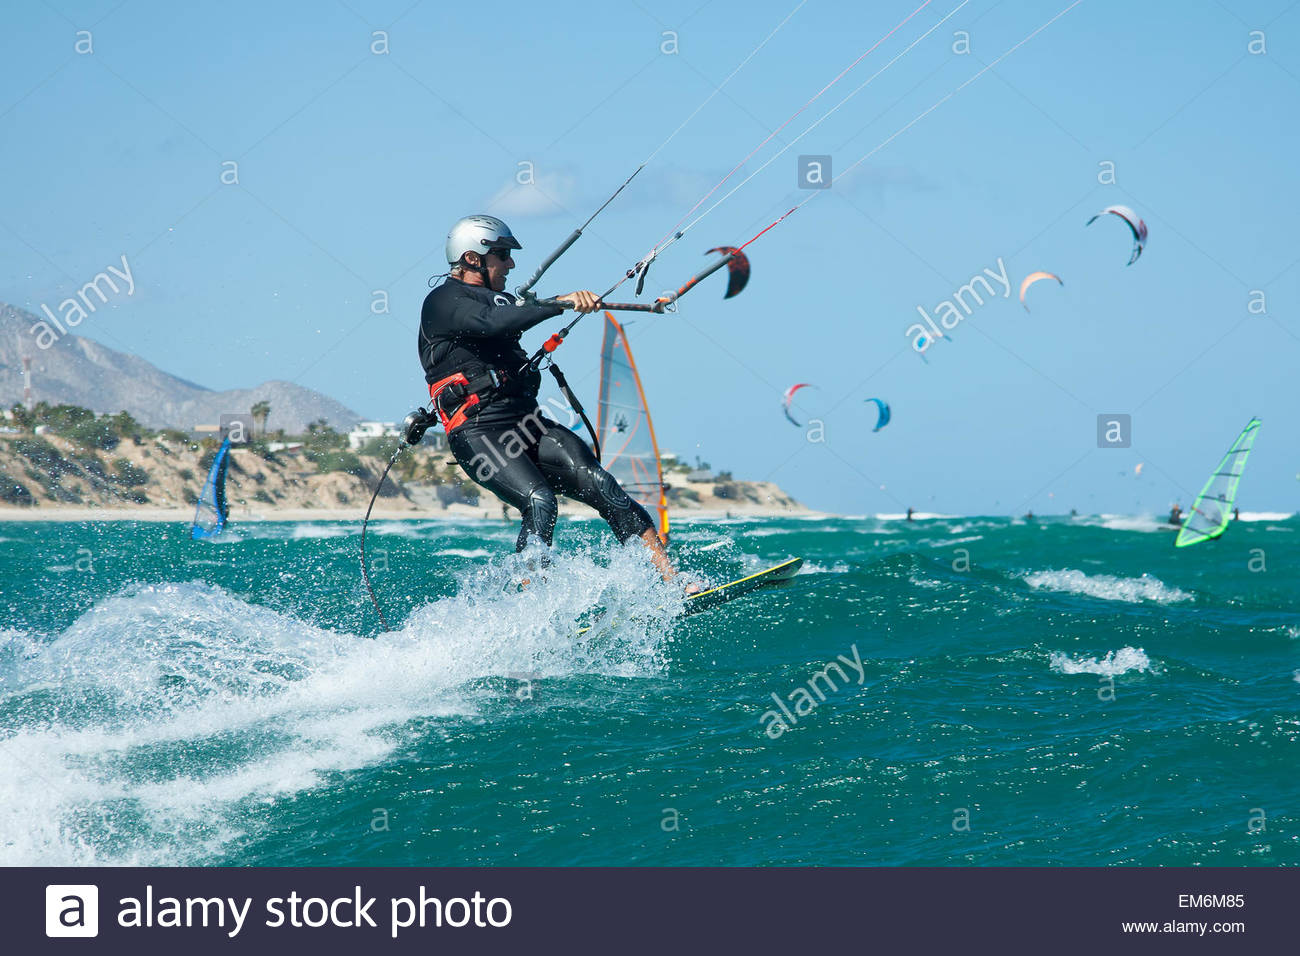 Mexico Others In Background La Ventana Mature Man Kiteboarding 1300x956